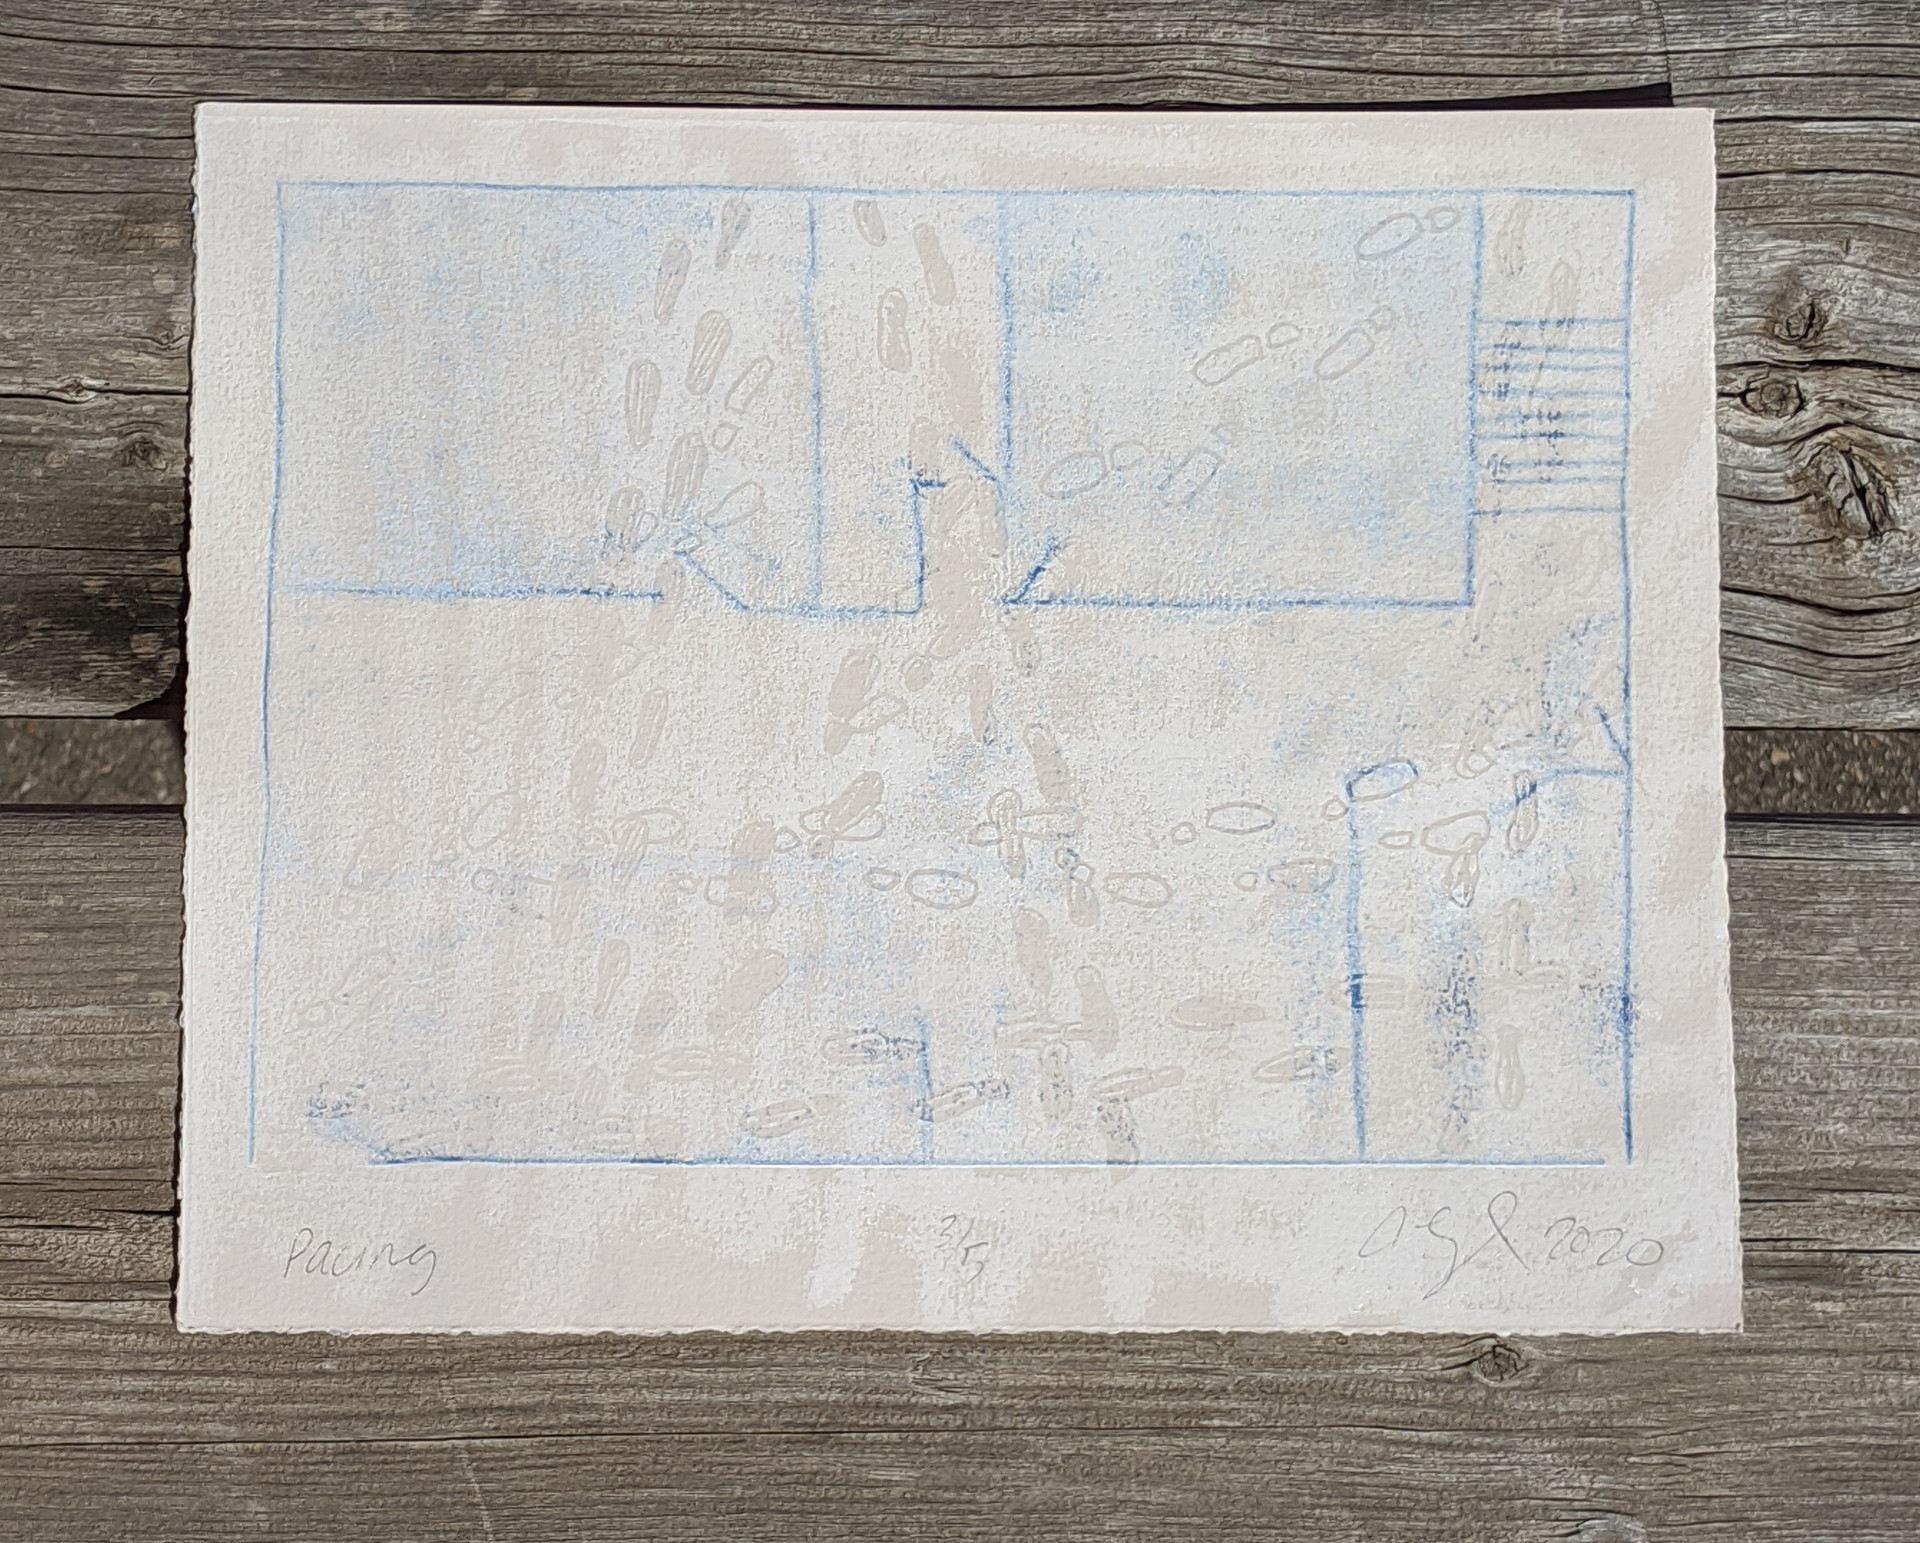 "Pacing, Relief and trace monoprint on grey rag paper, 8"" x 10"", 2020 $50 with 50% of the proceeds being donated"